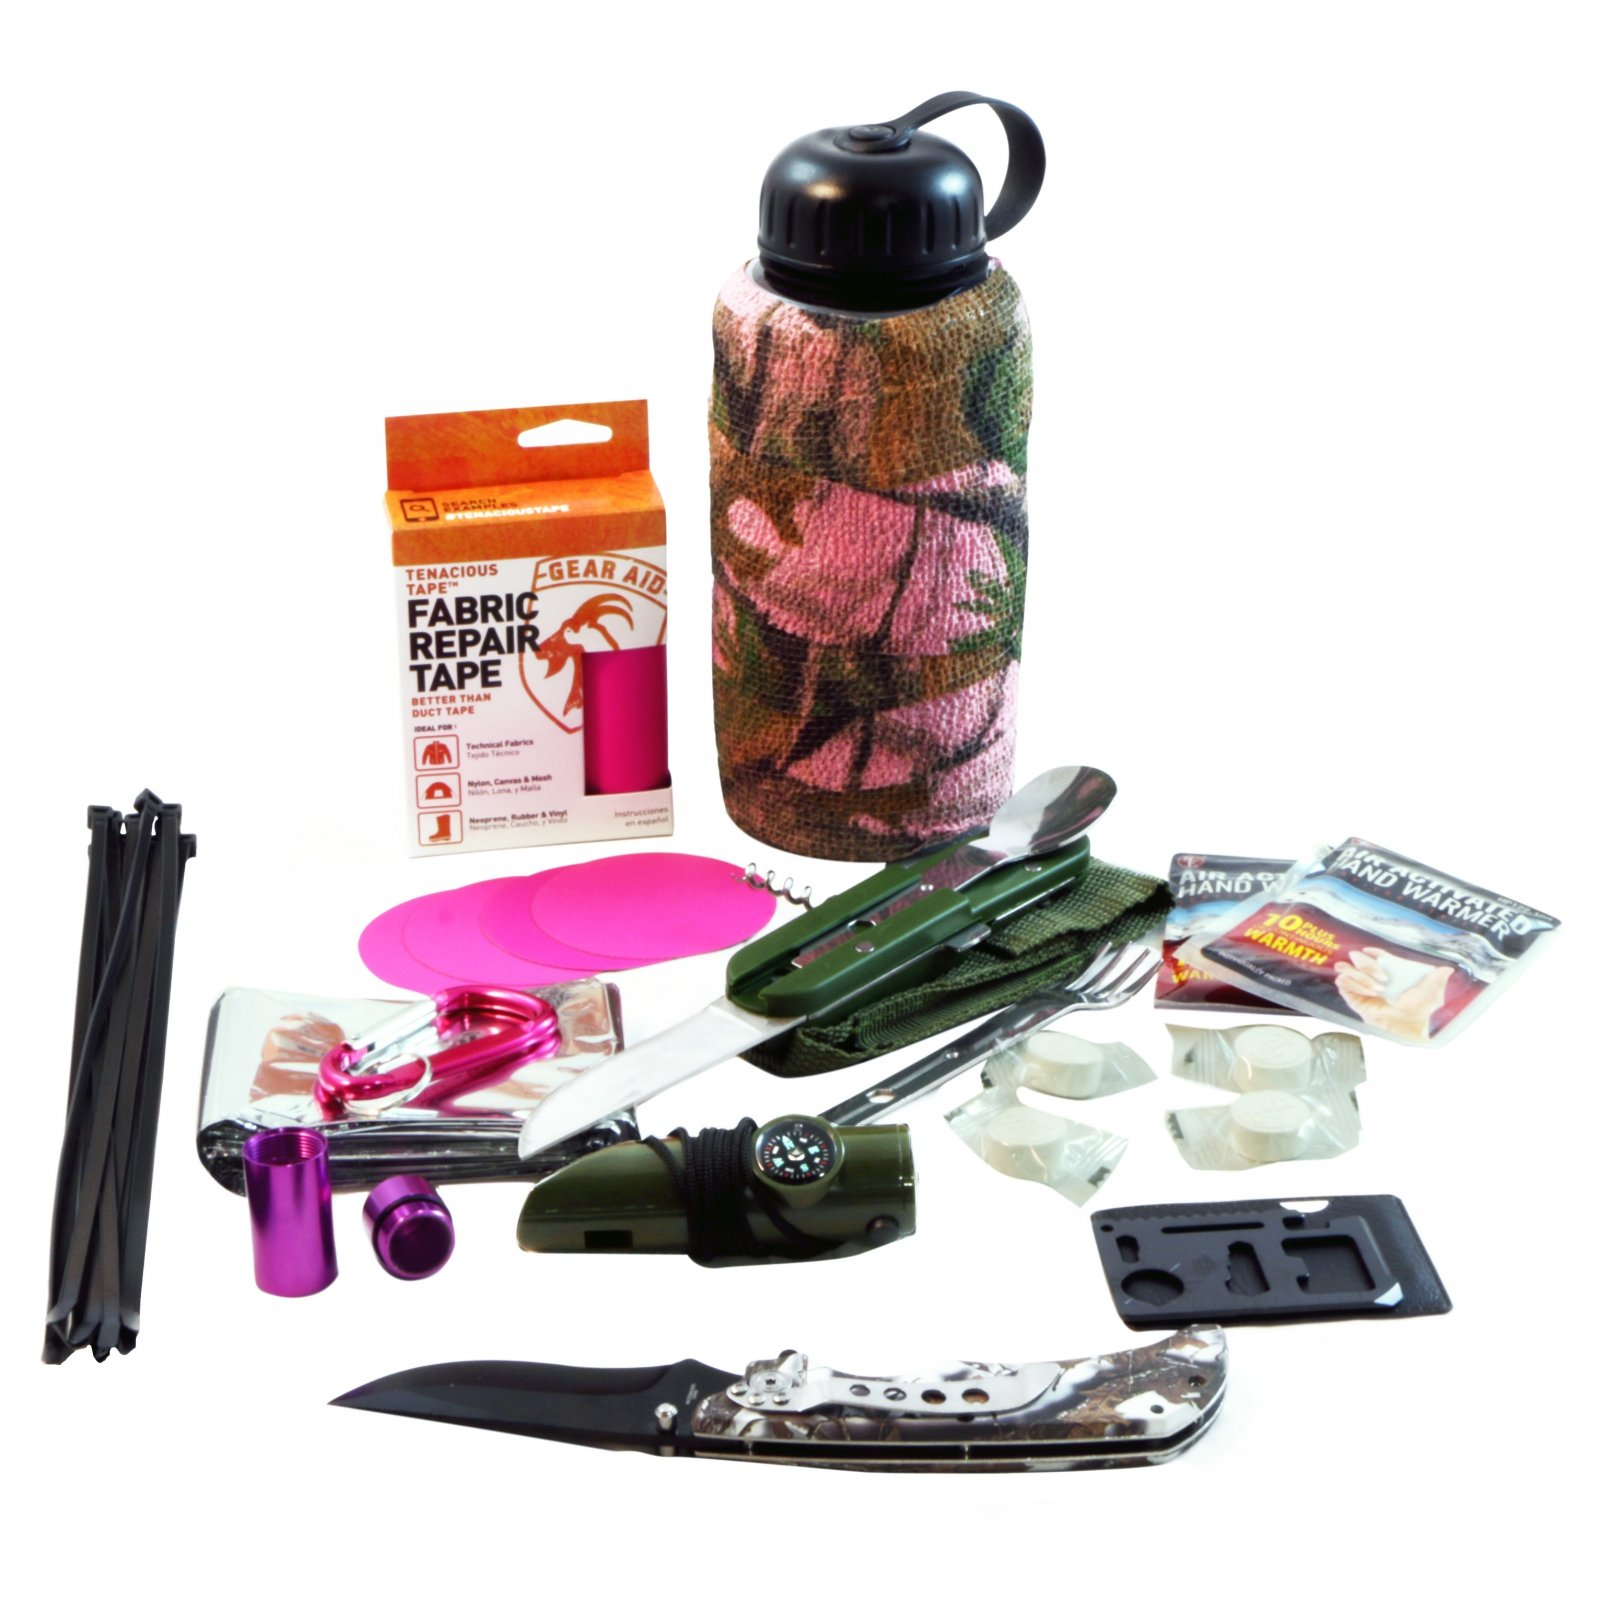 ASR Outdoor Womens Camo Bottle Survival Kit Gear Repair Tape Camping Tools Pink